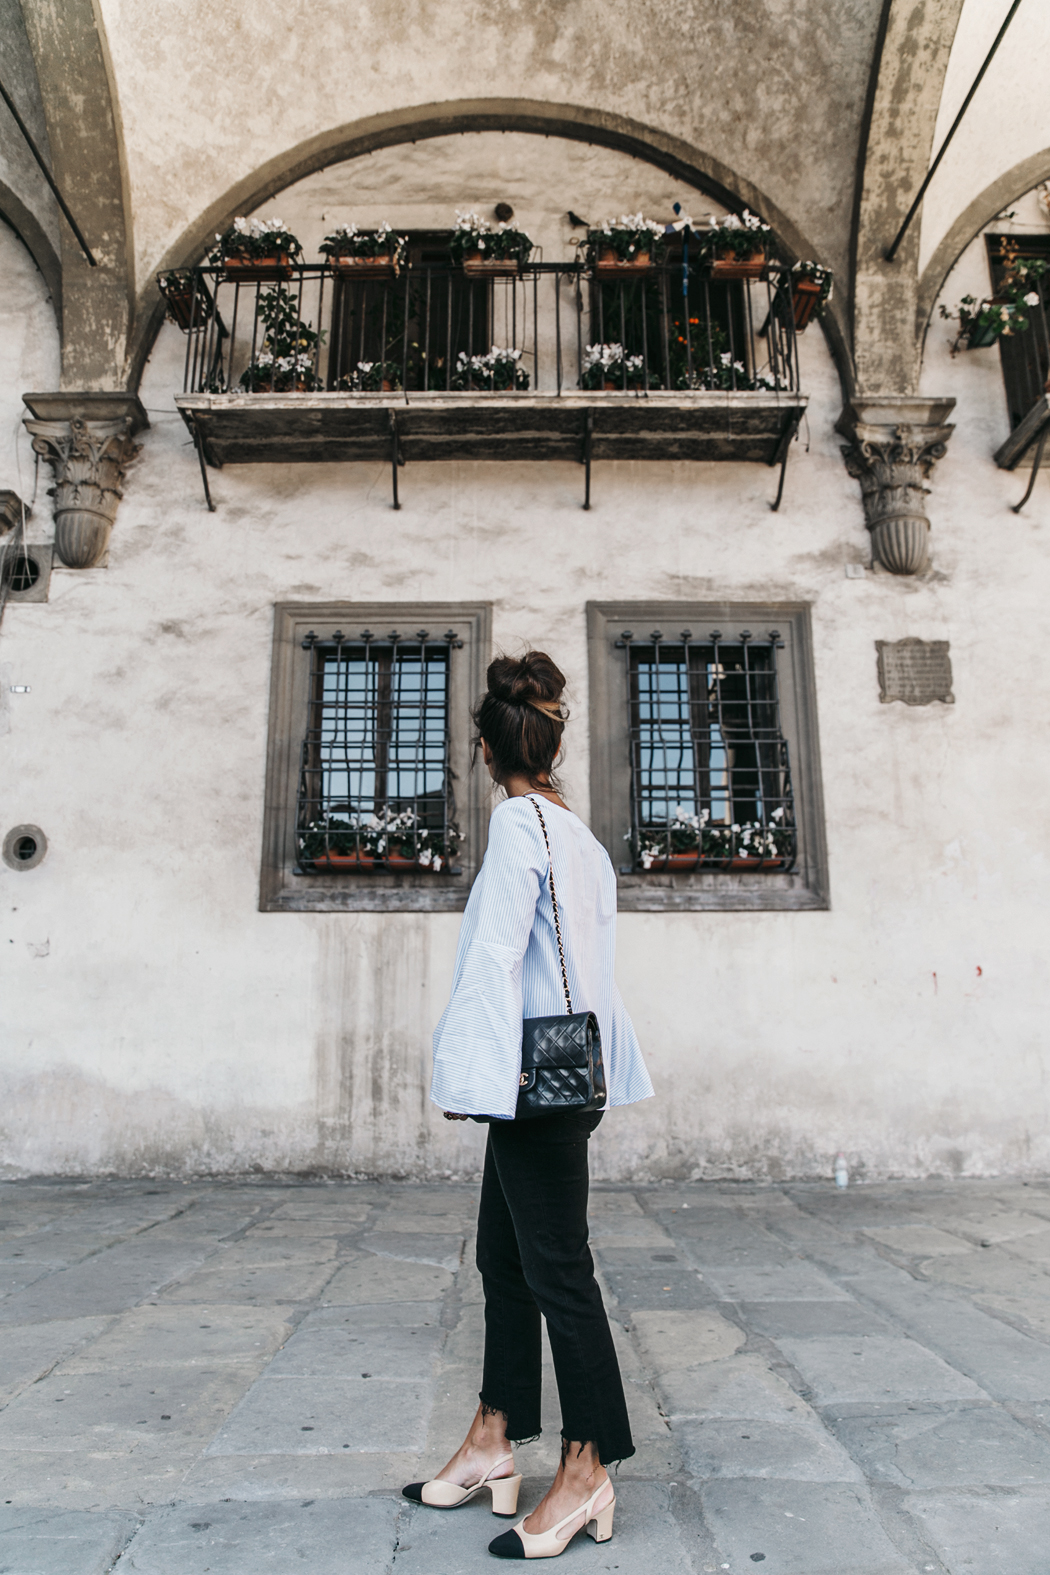 Florence-Collage_On_The_Road-Black_Jeans-Chanel_Slingback_Shoes-Blue_Shirt-Uterque-Topknot-Outfit-6